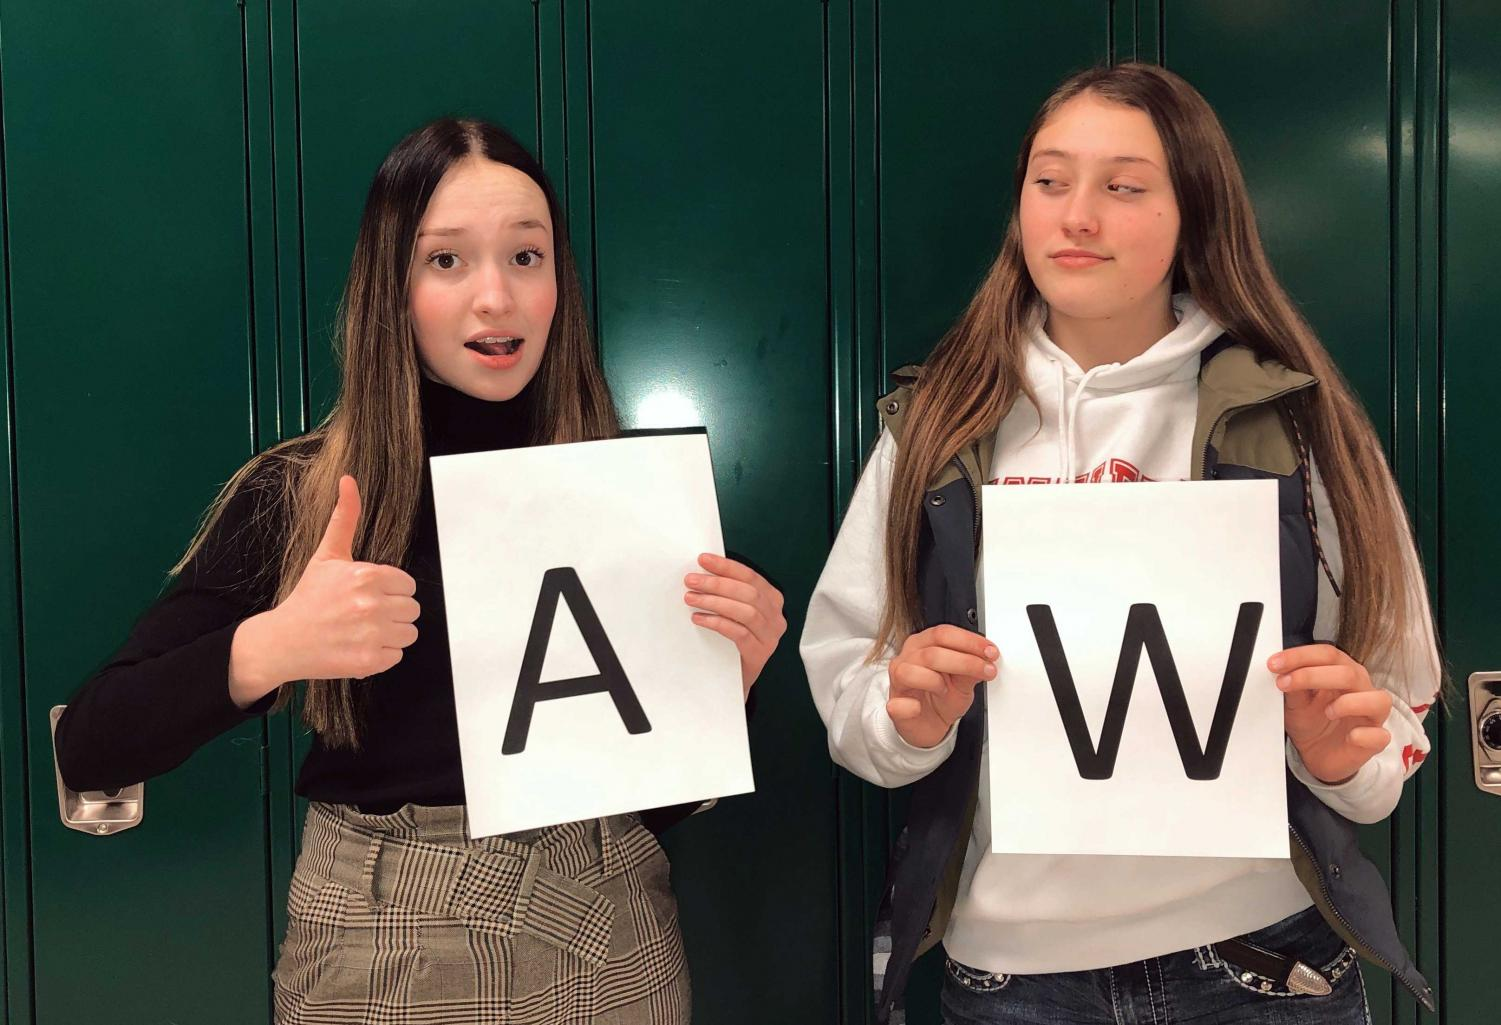 Prowl reporters (from left) Kalli Ashby and Emerson Wormald pose for a picture representing their feelings toward their first letter of their last name